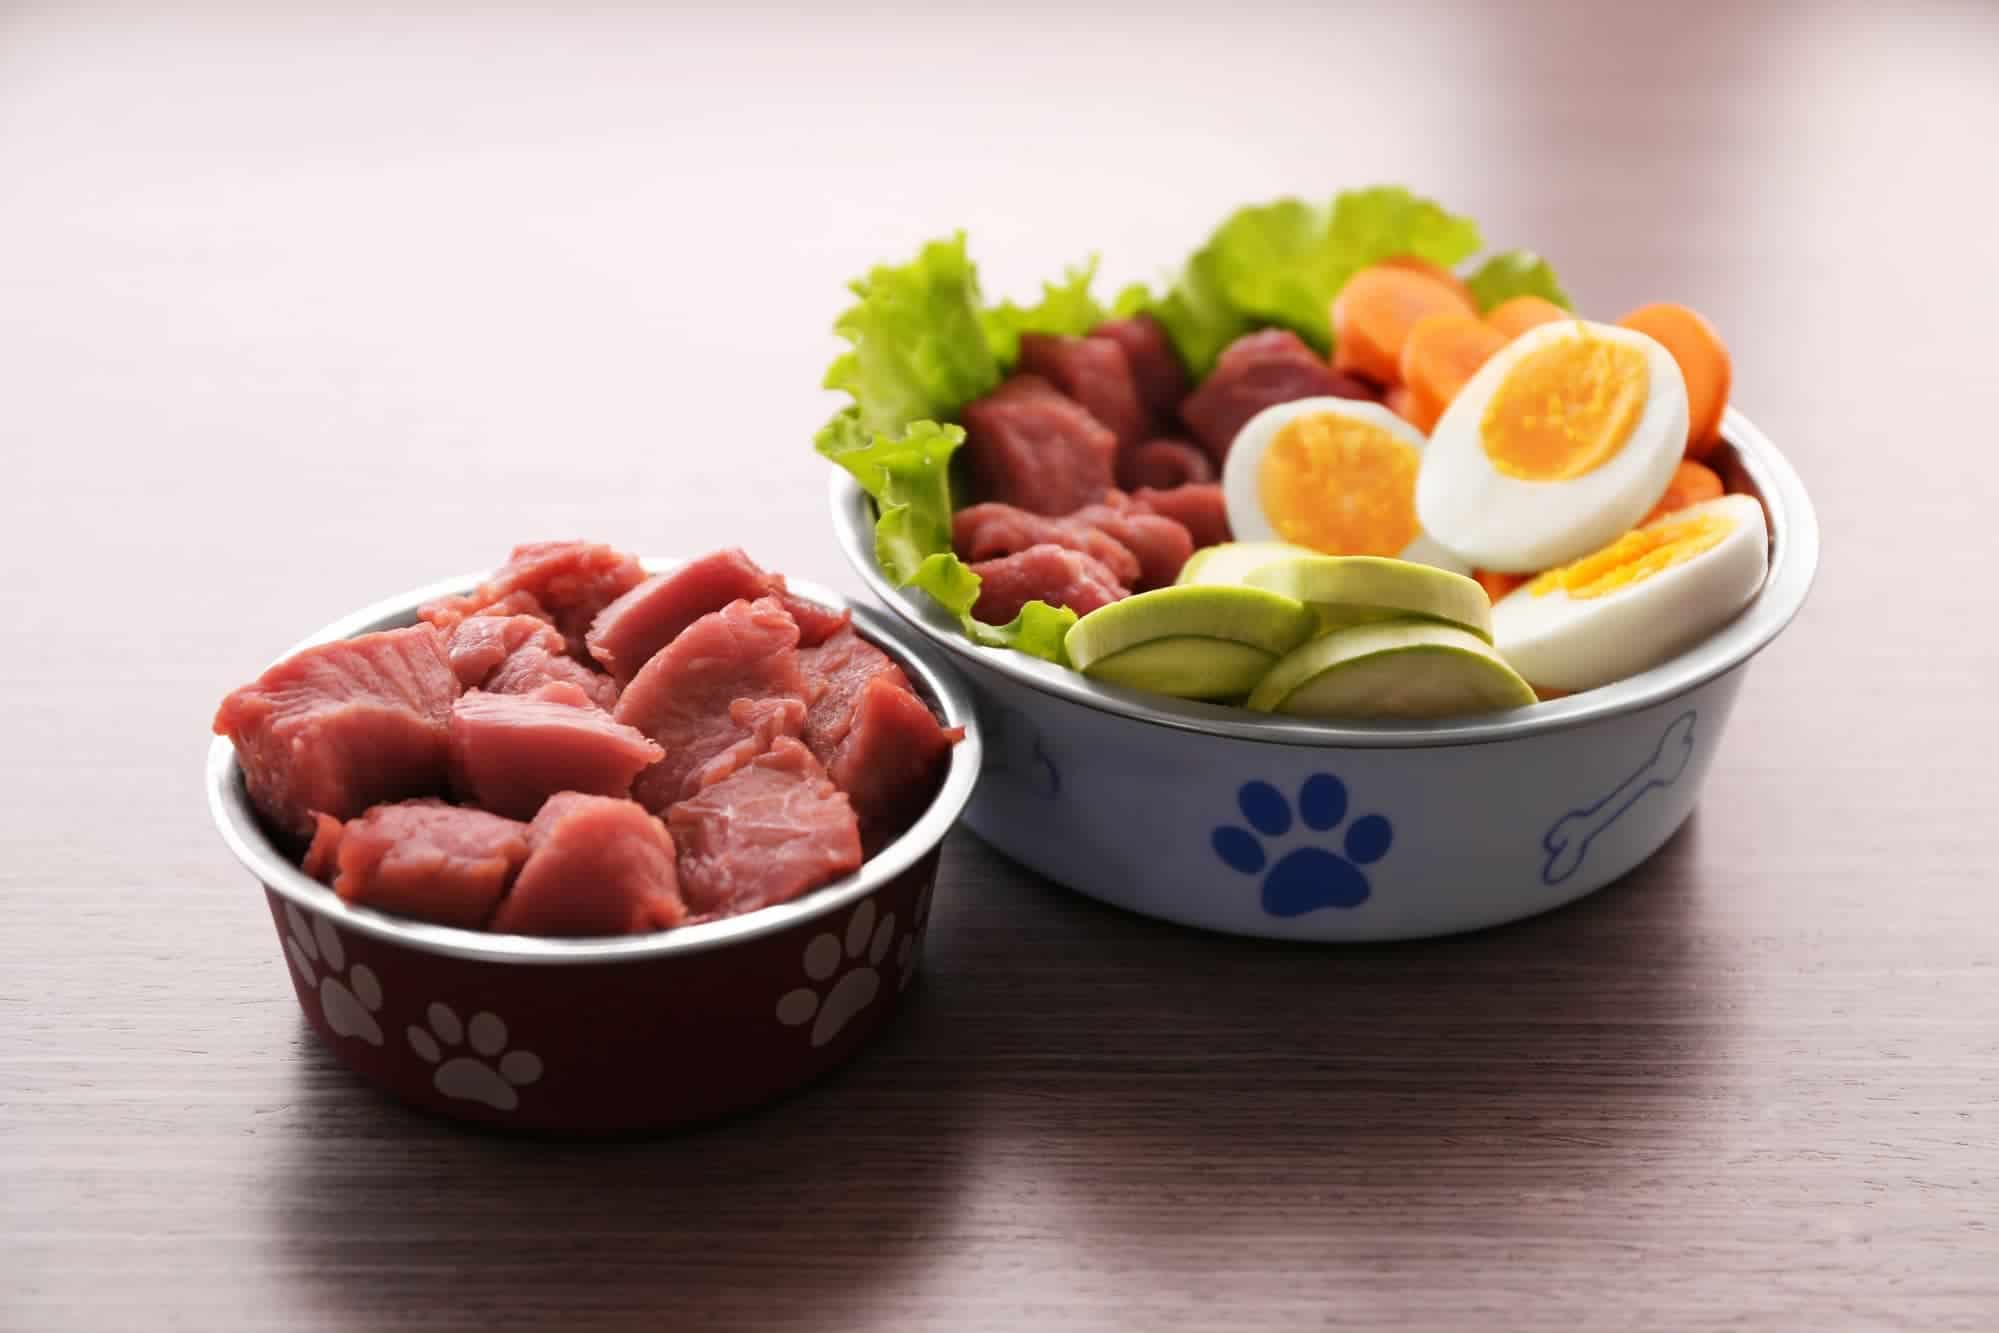 Dog meat and vegetables